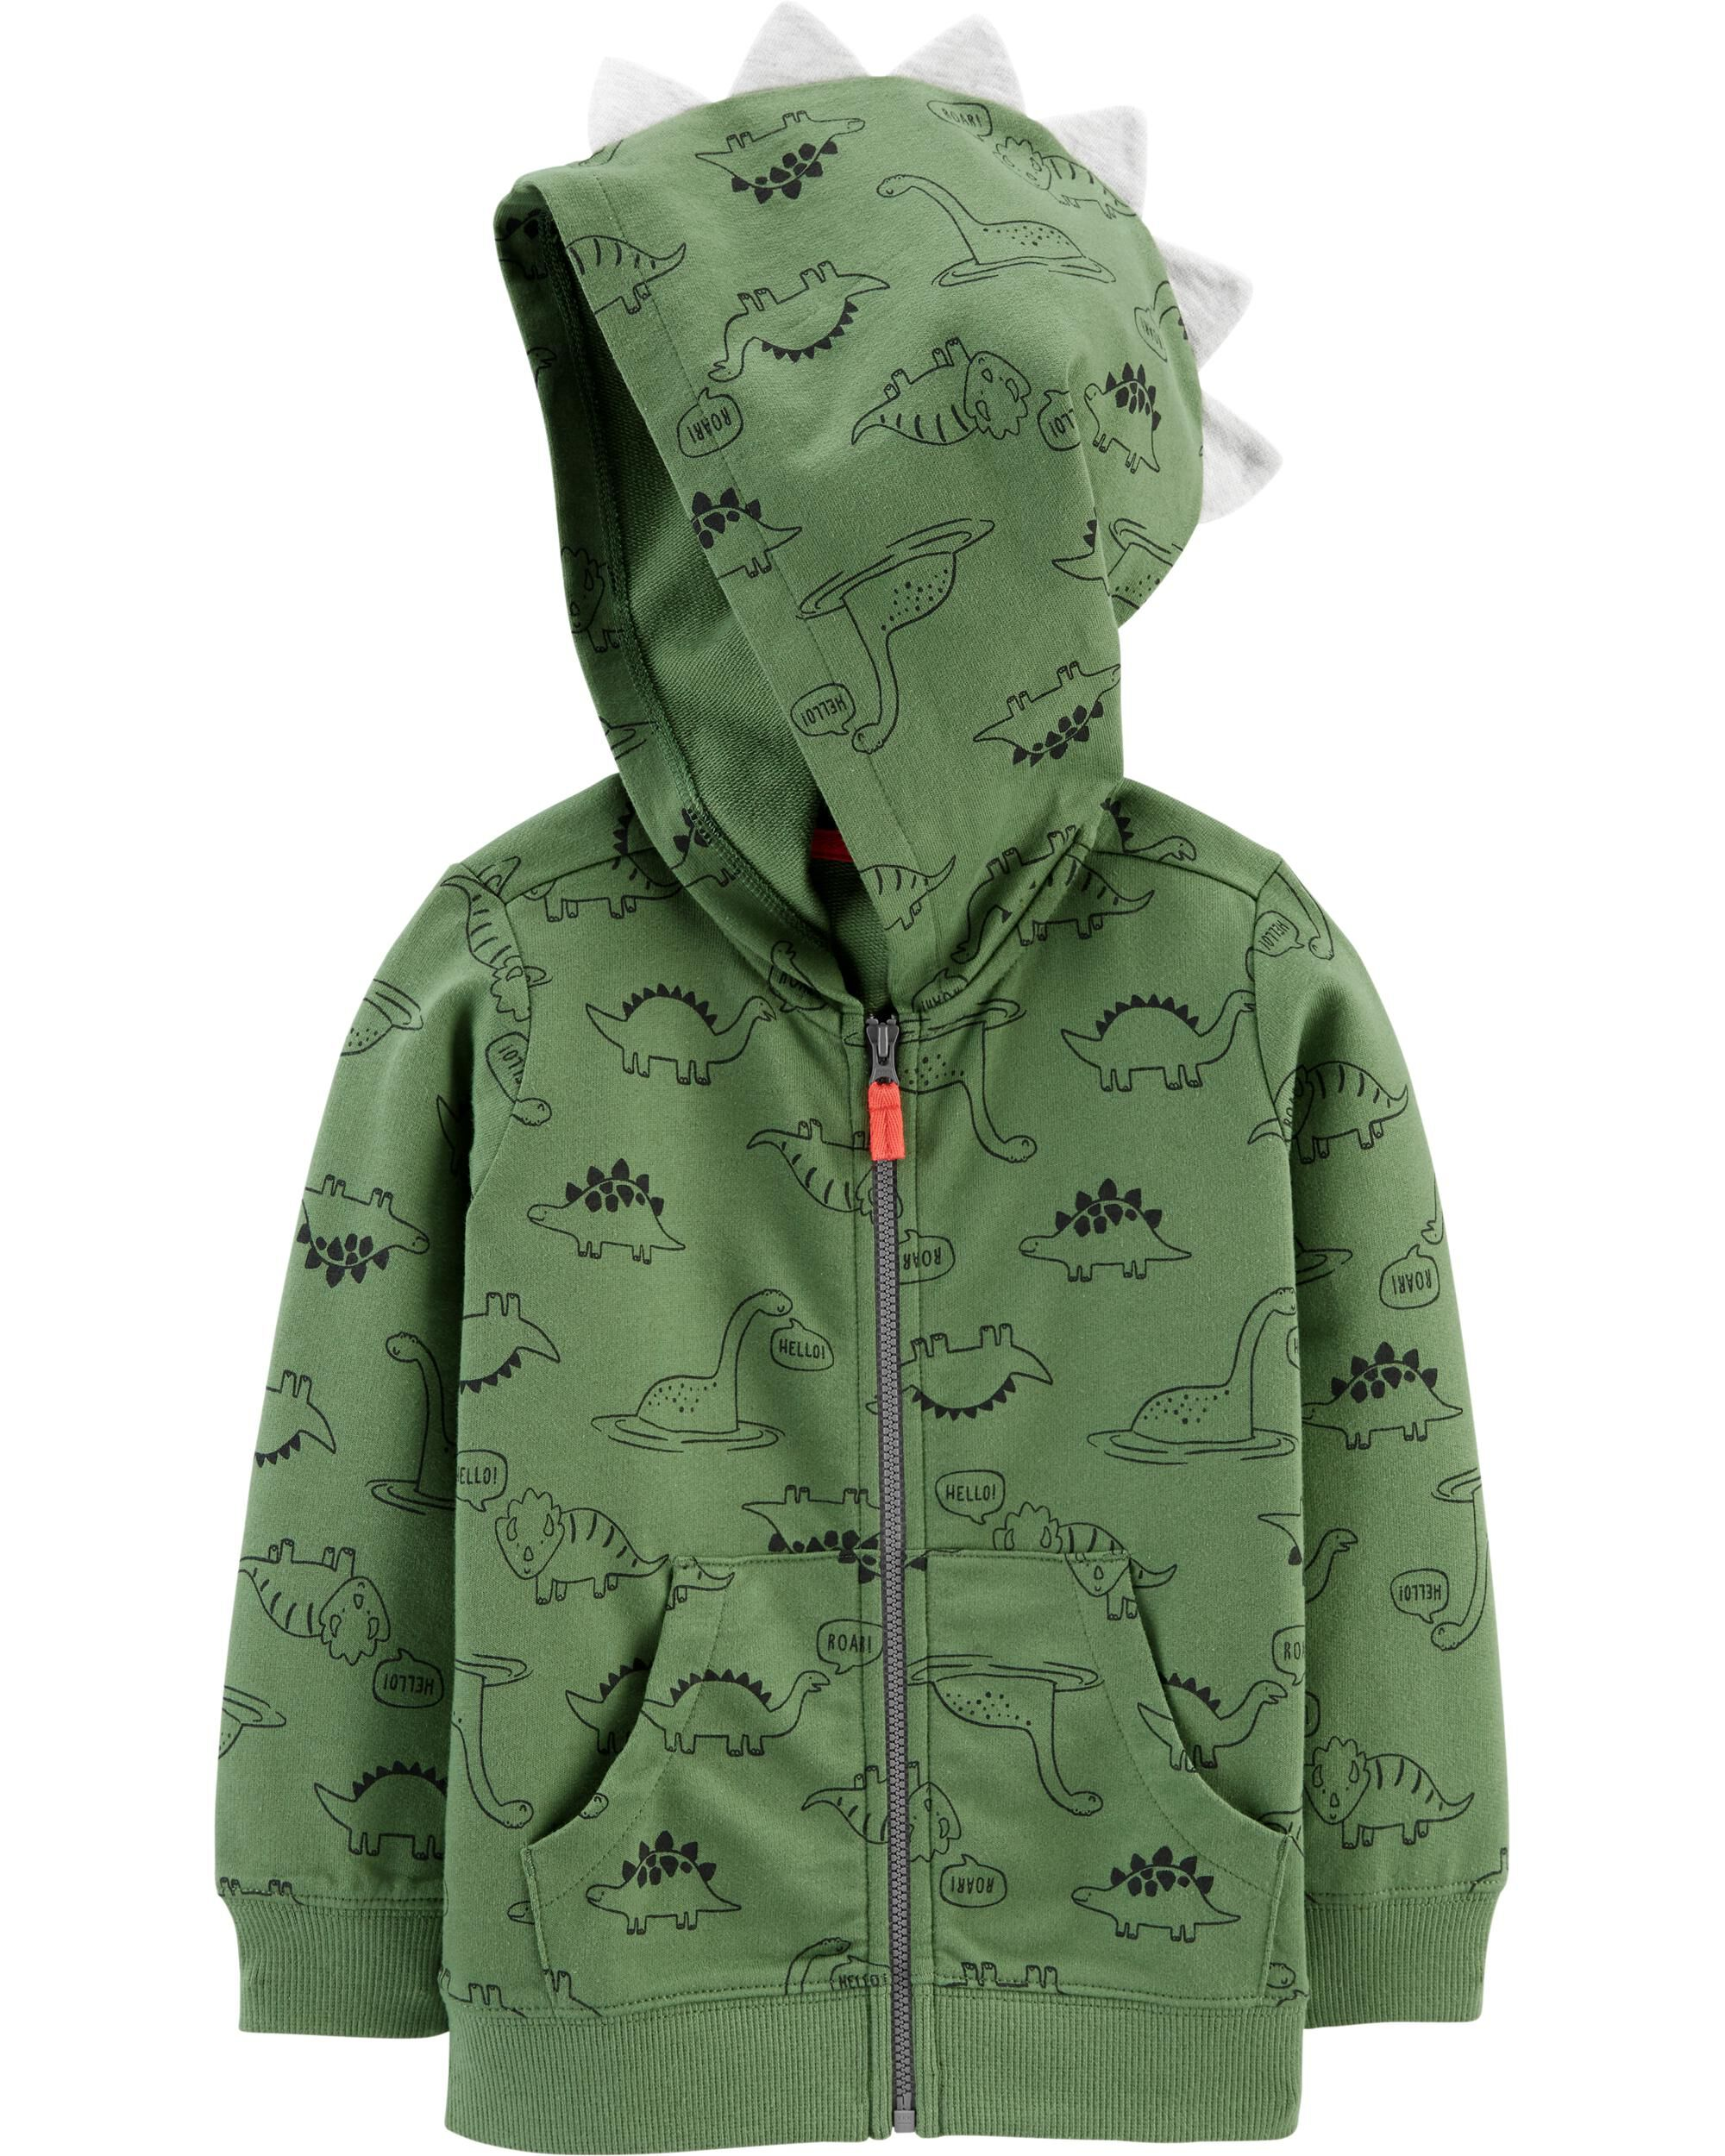 *CLEARANCE* Dinosaur Zip-Up French Terry Hoodie